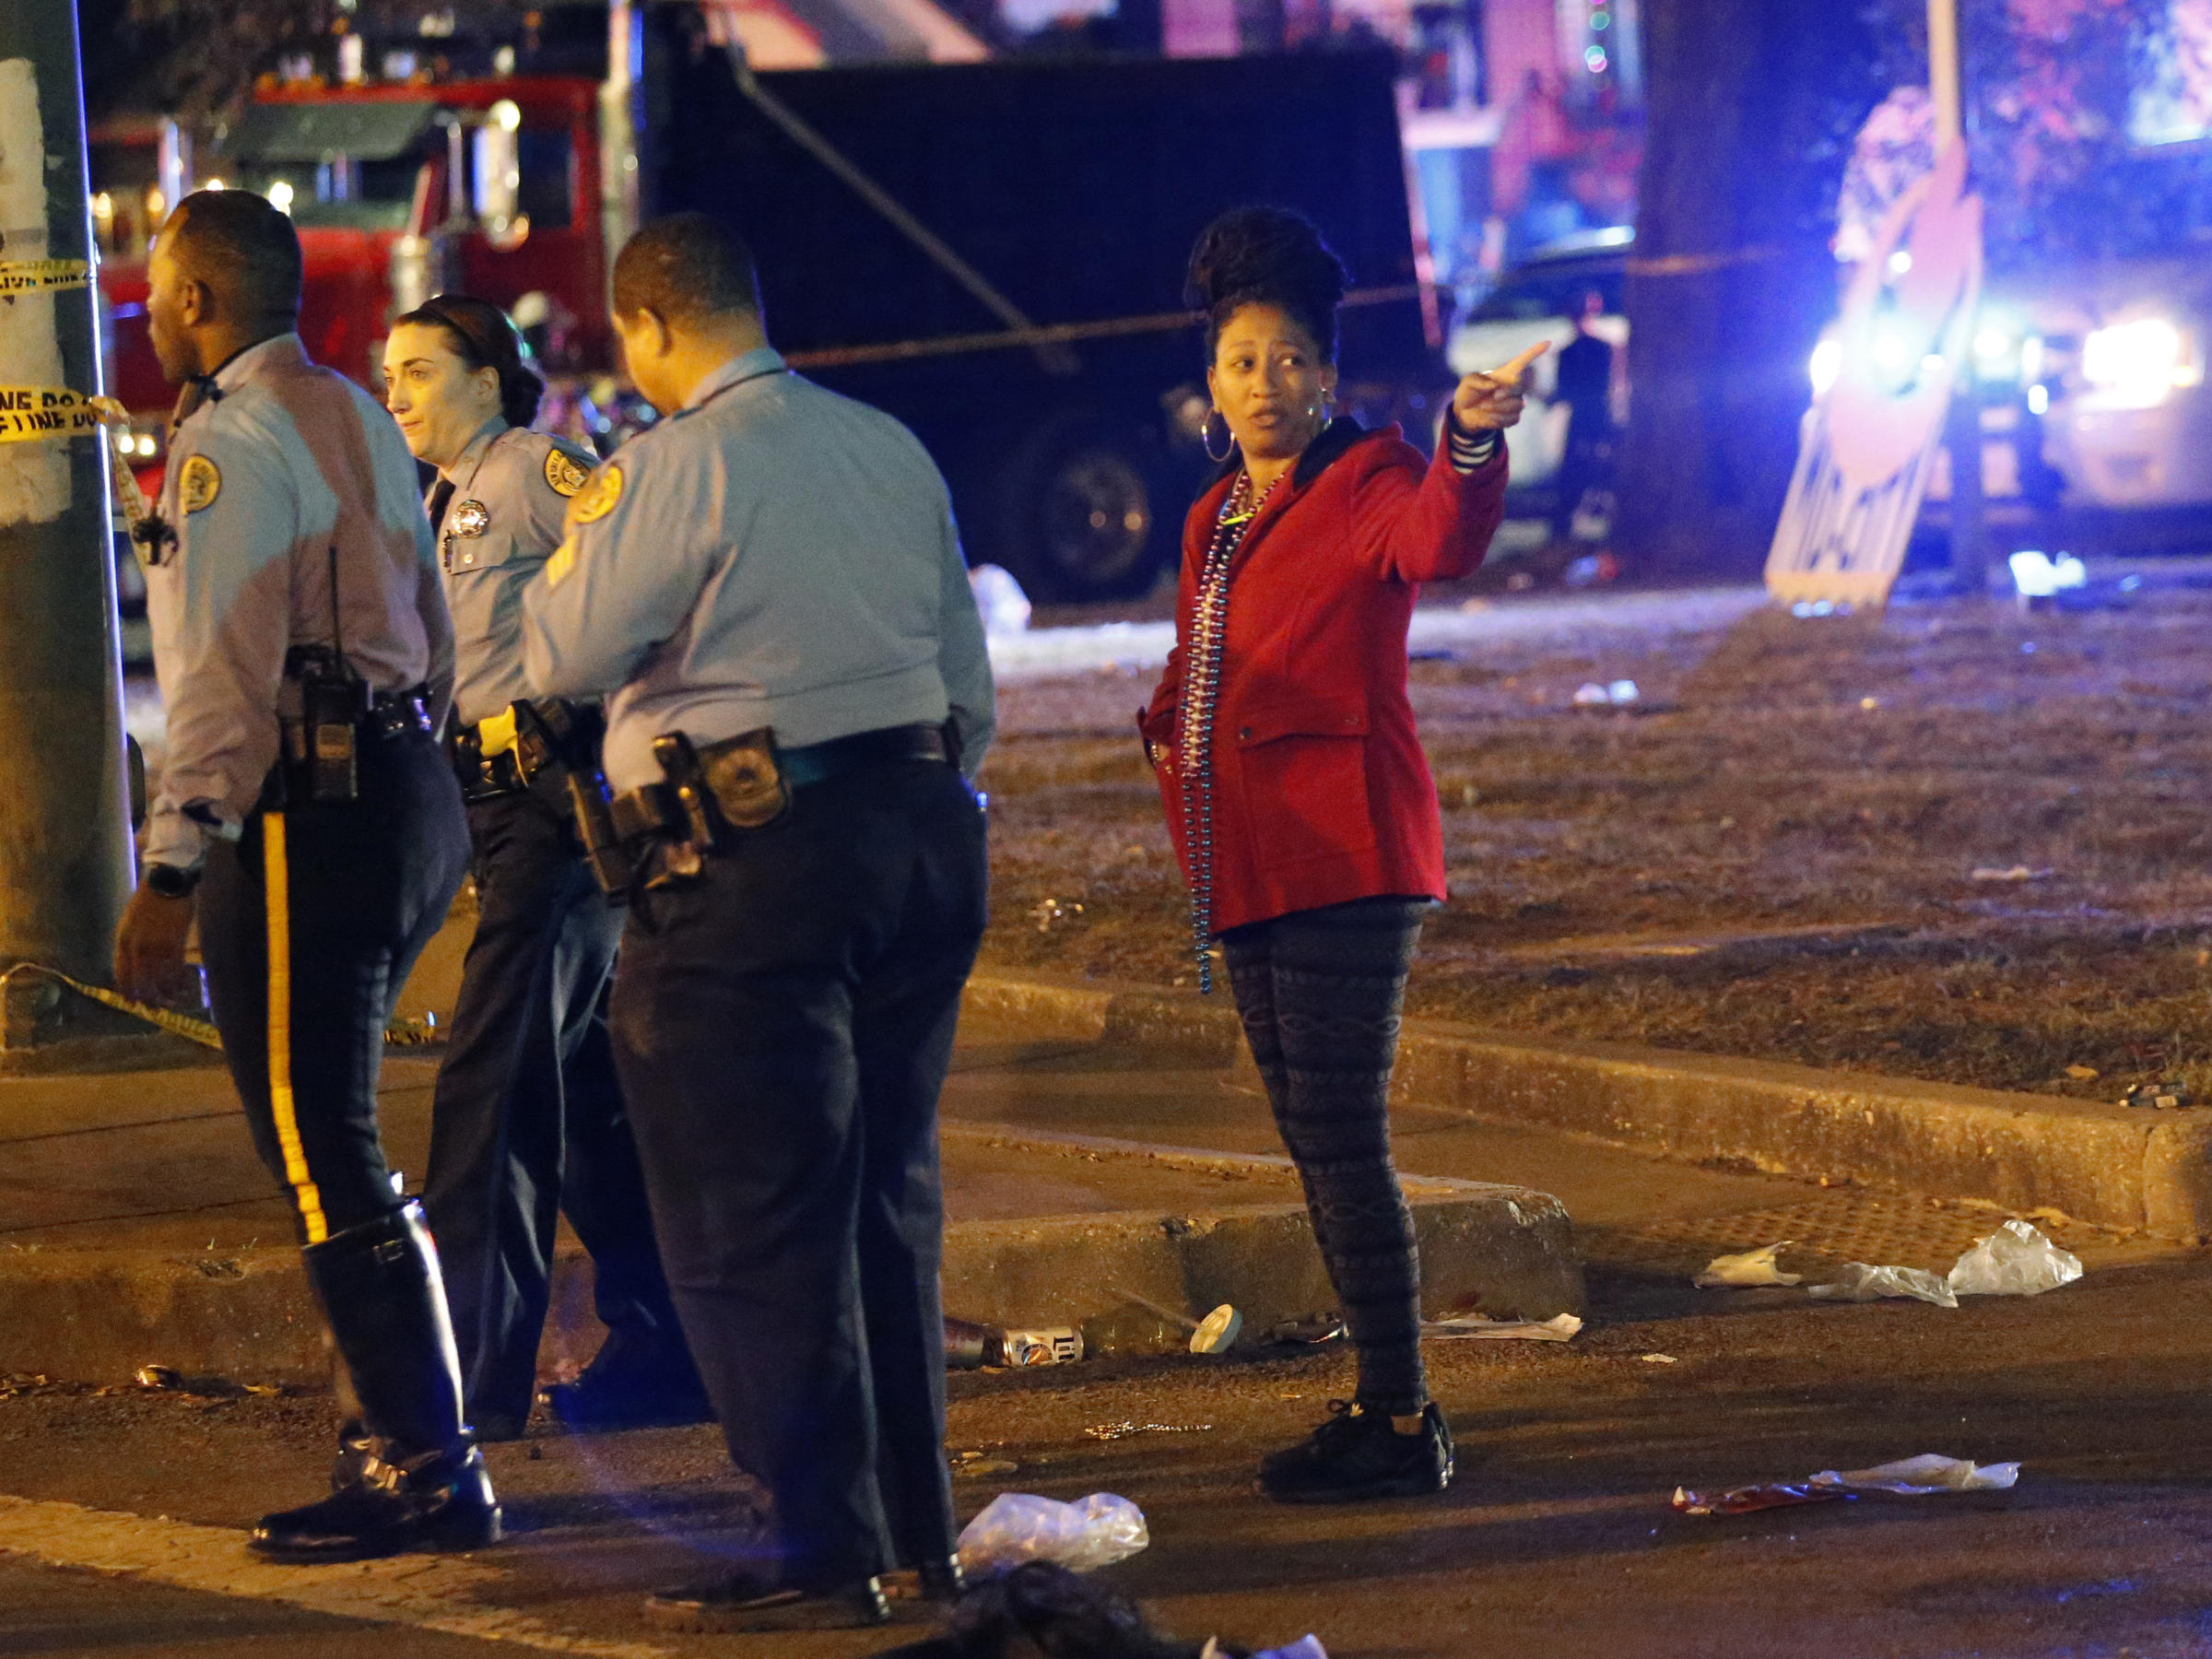 Highly Intoxicated' Driver Plows Into Mardi Gras Crowd